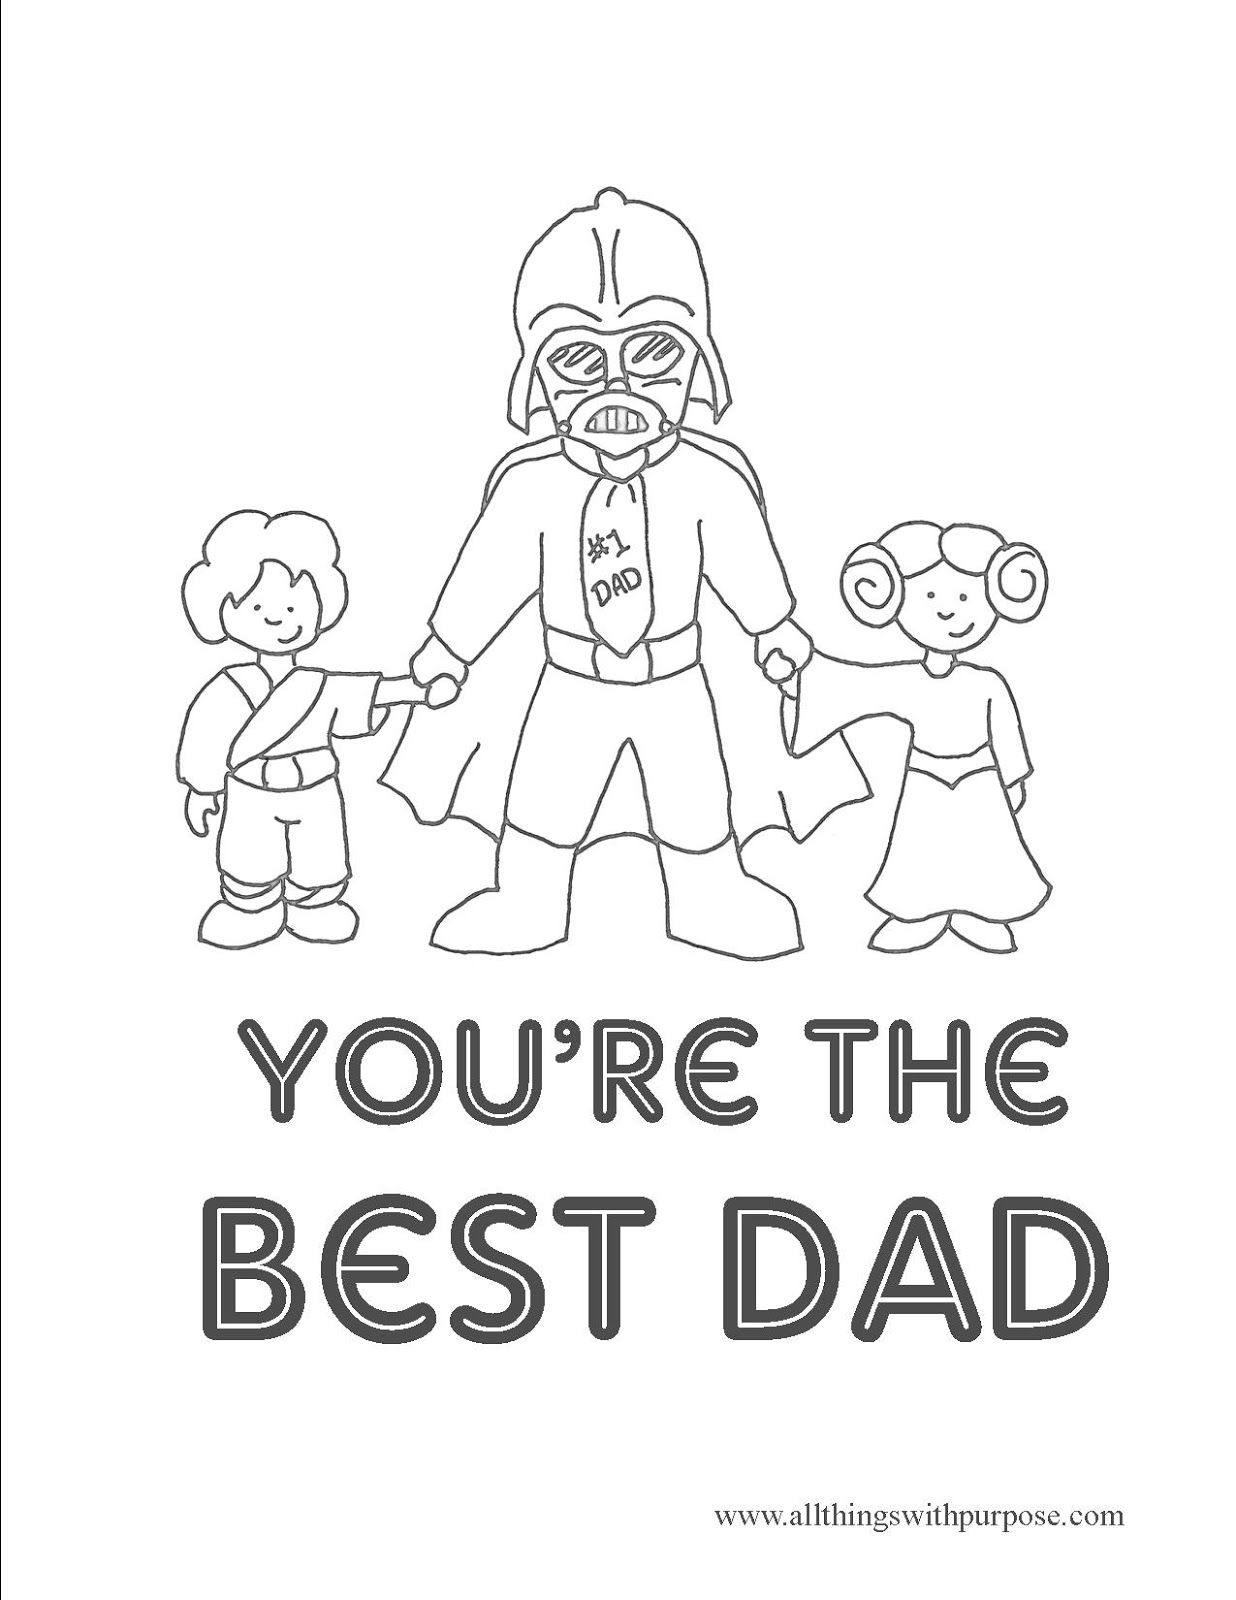 Fathers Day Printable Coloring Sheets And Pages For Girls Father S Day Printable Coloring Pages Coloring Sheets For Kids